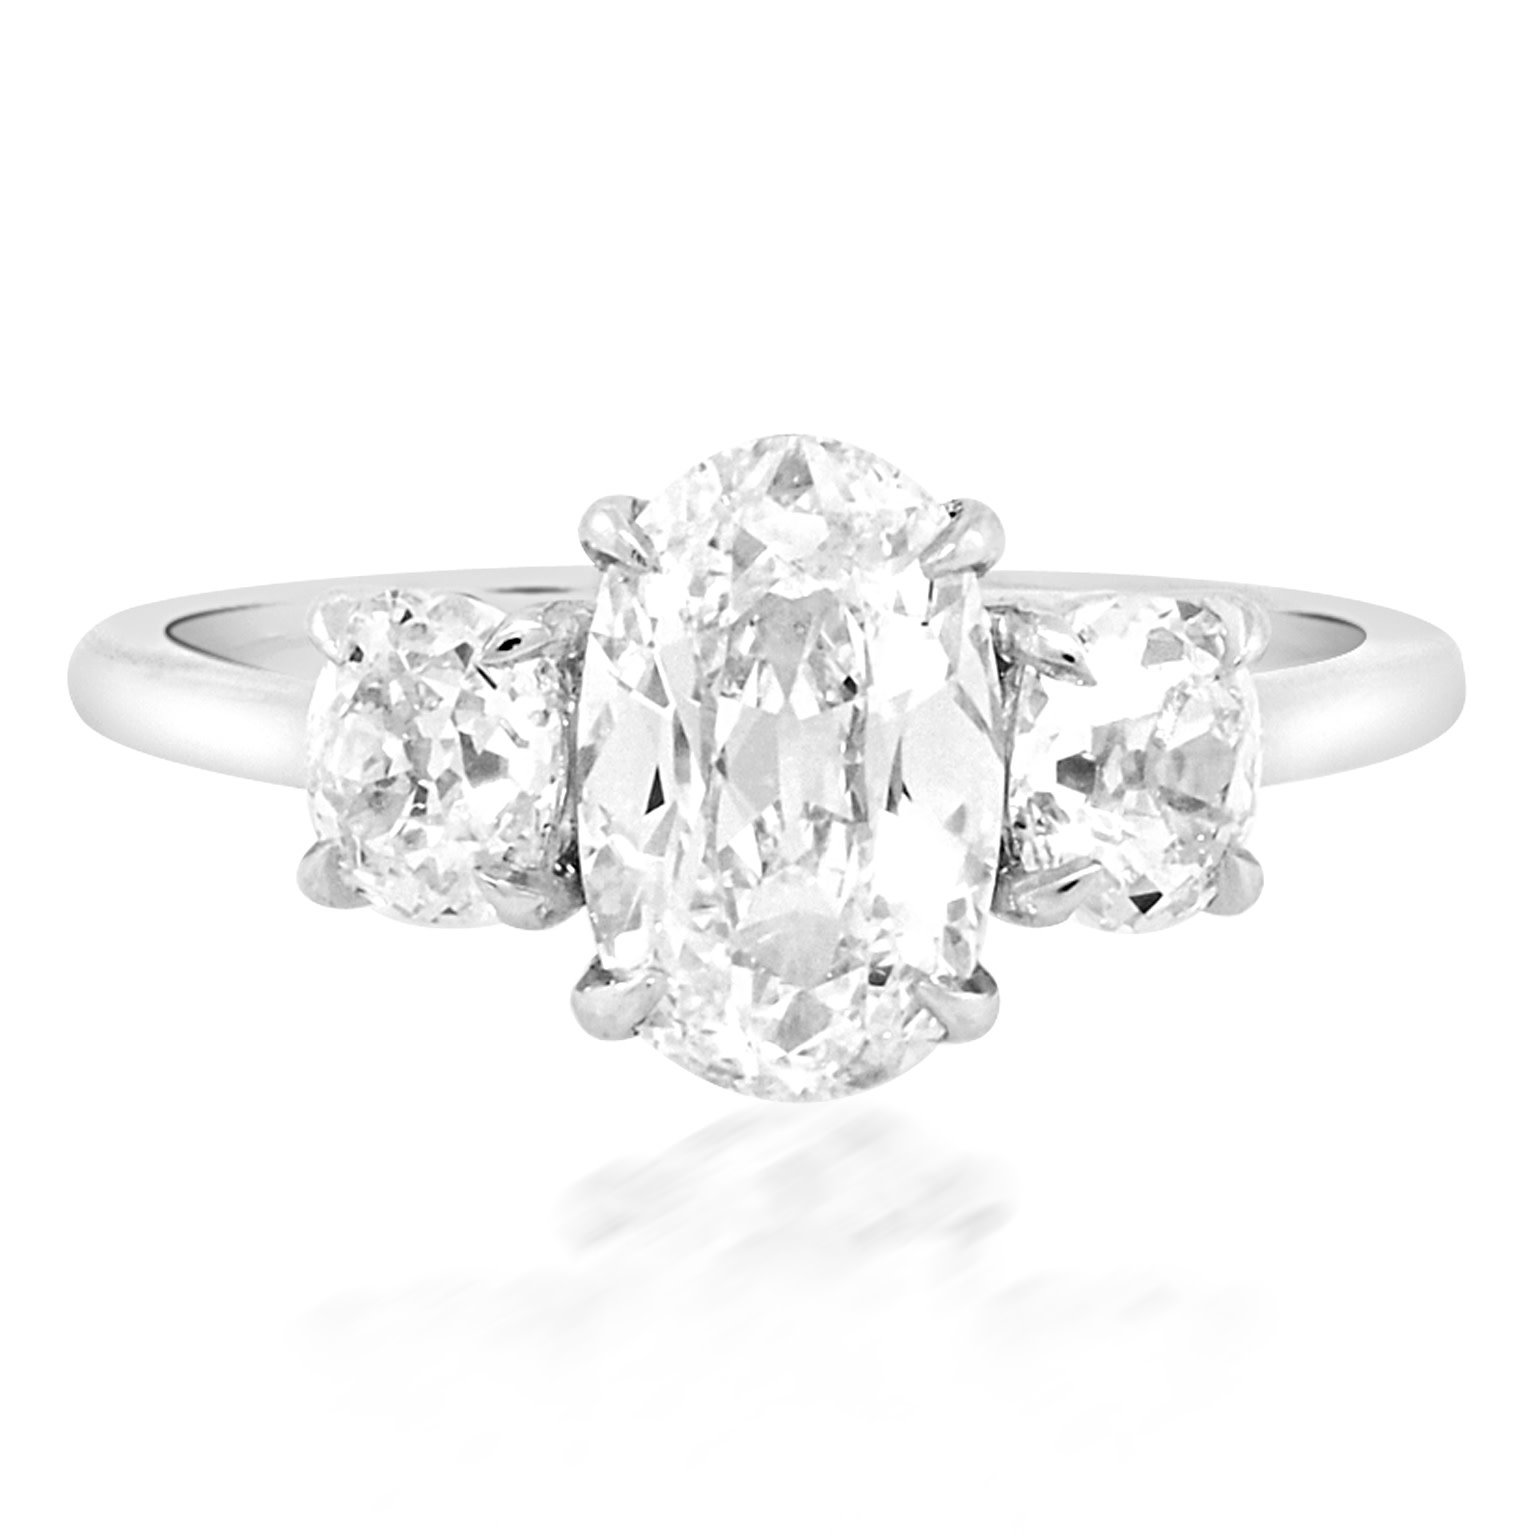 Trabert Goldsmiths 1.64ct JVVS1 Antique Oval 3-Stone Ring